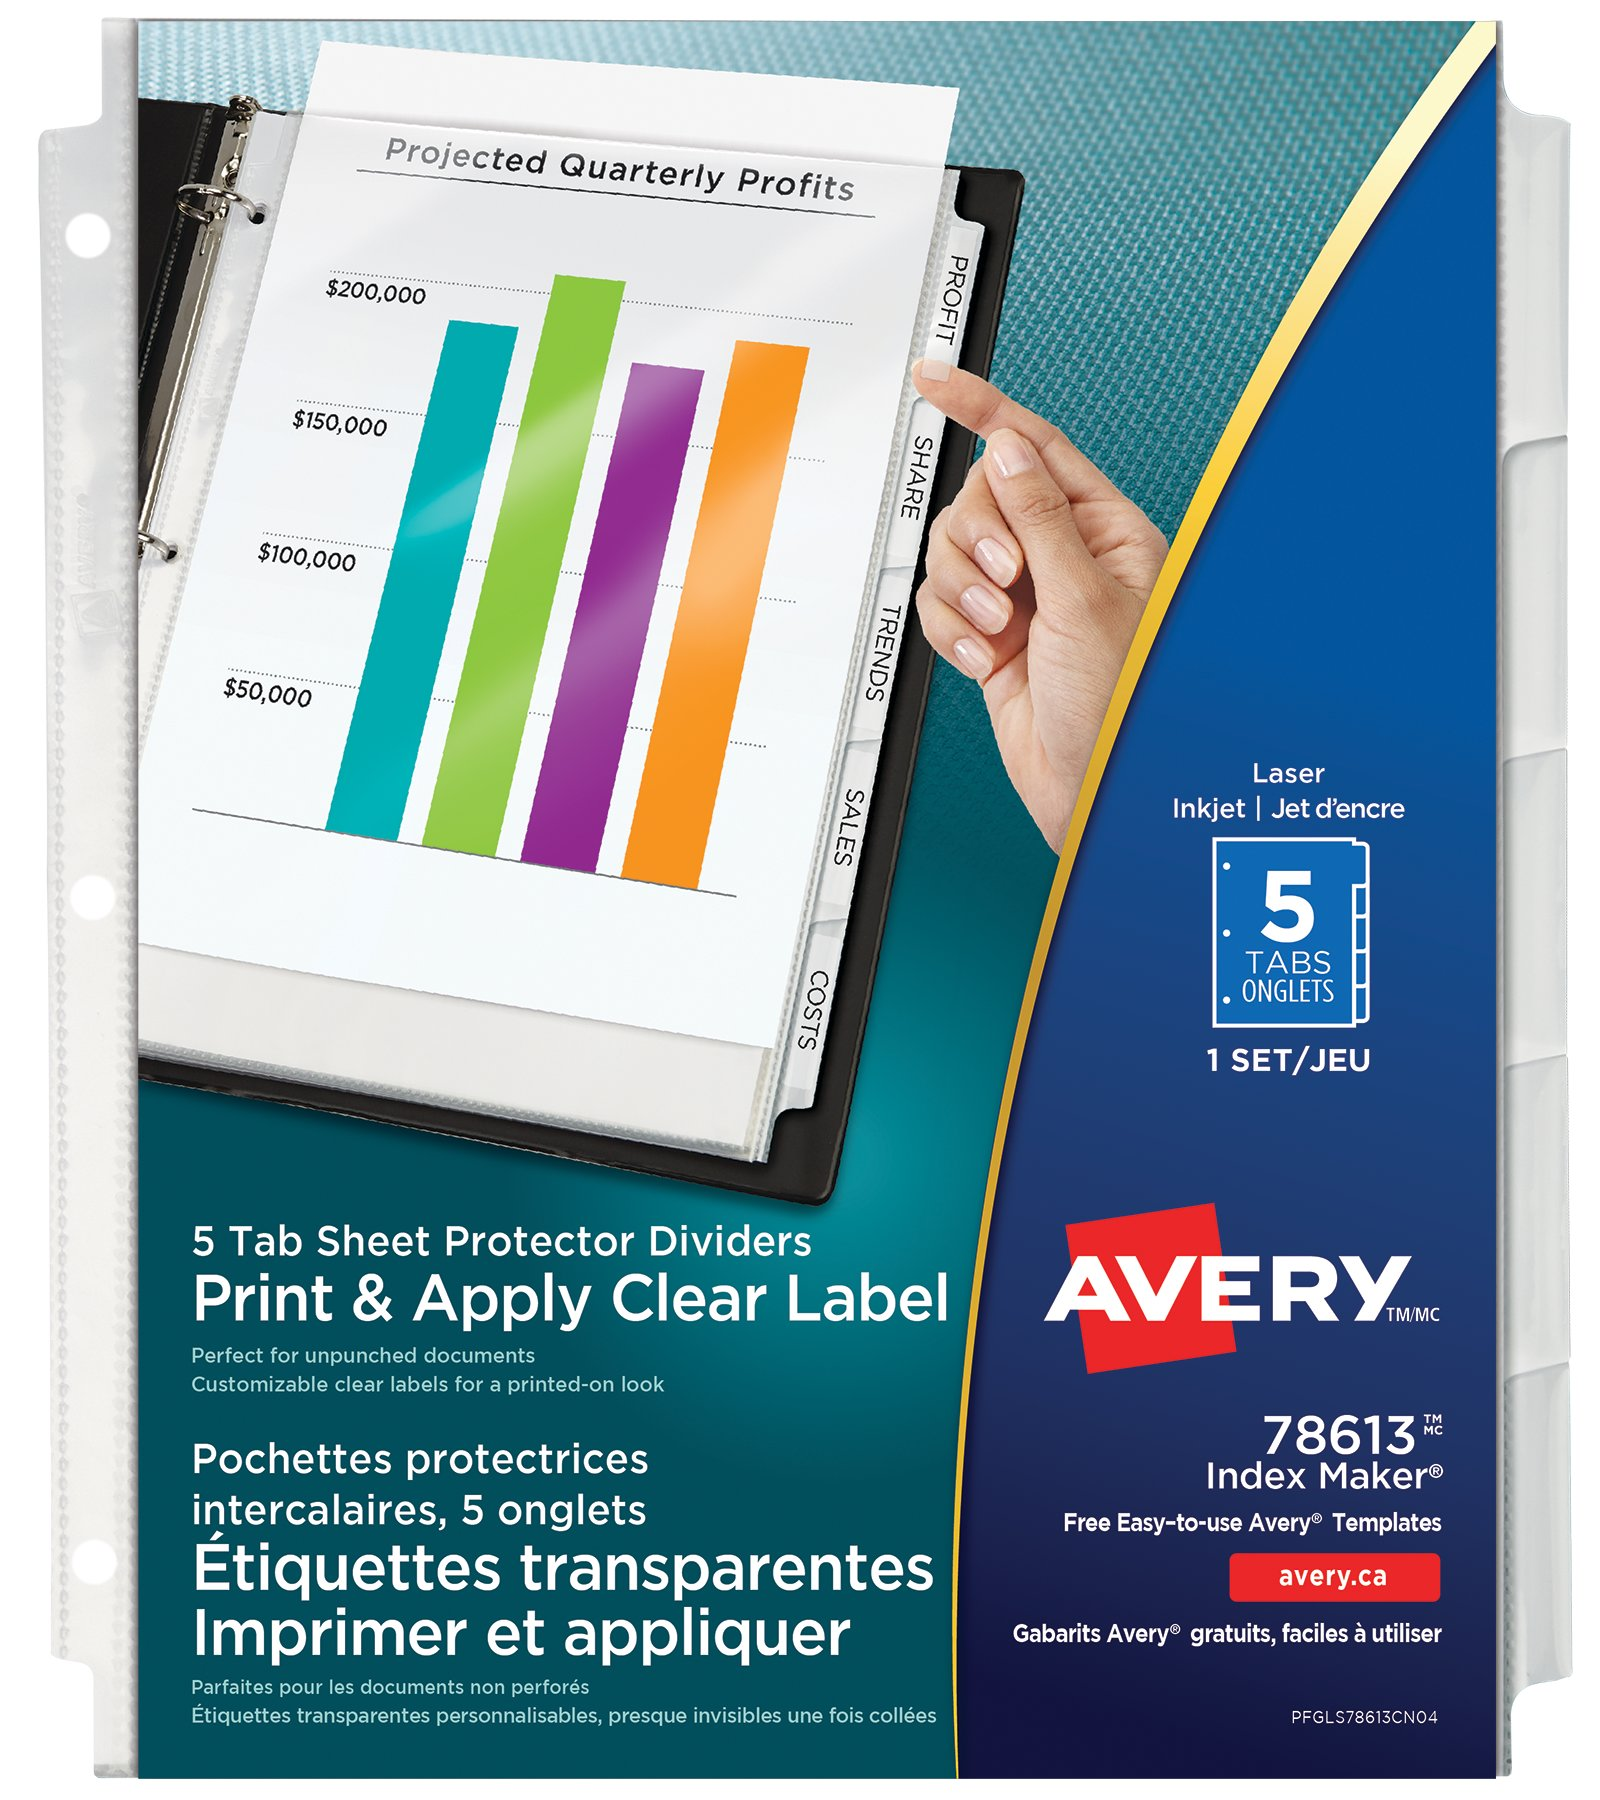 Clear pocket index maker dividers for Avery easy apply 5 tab template